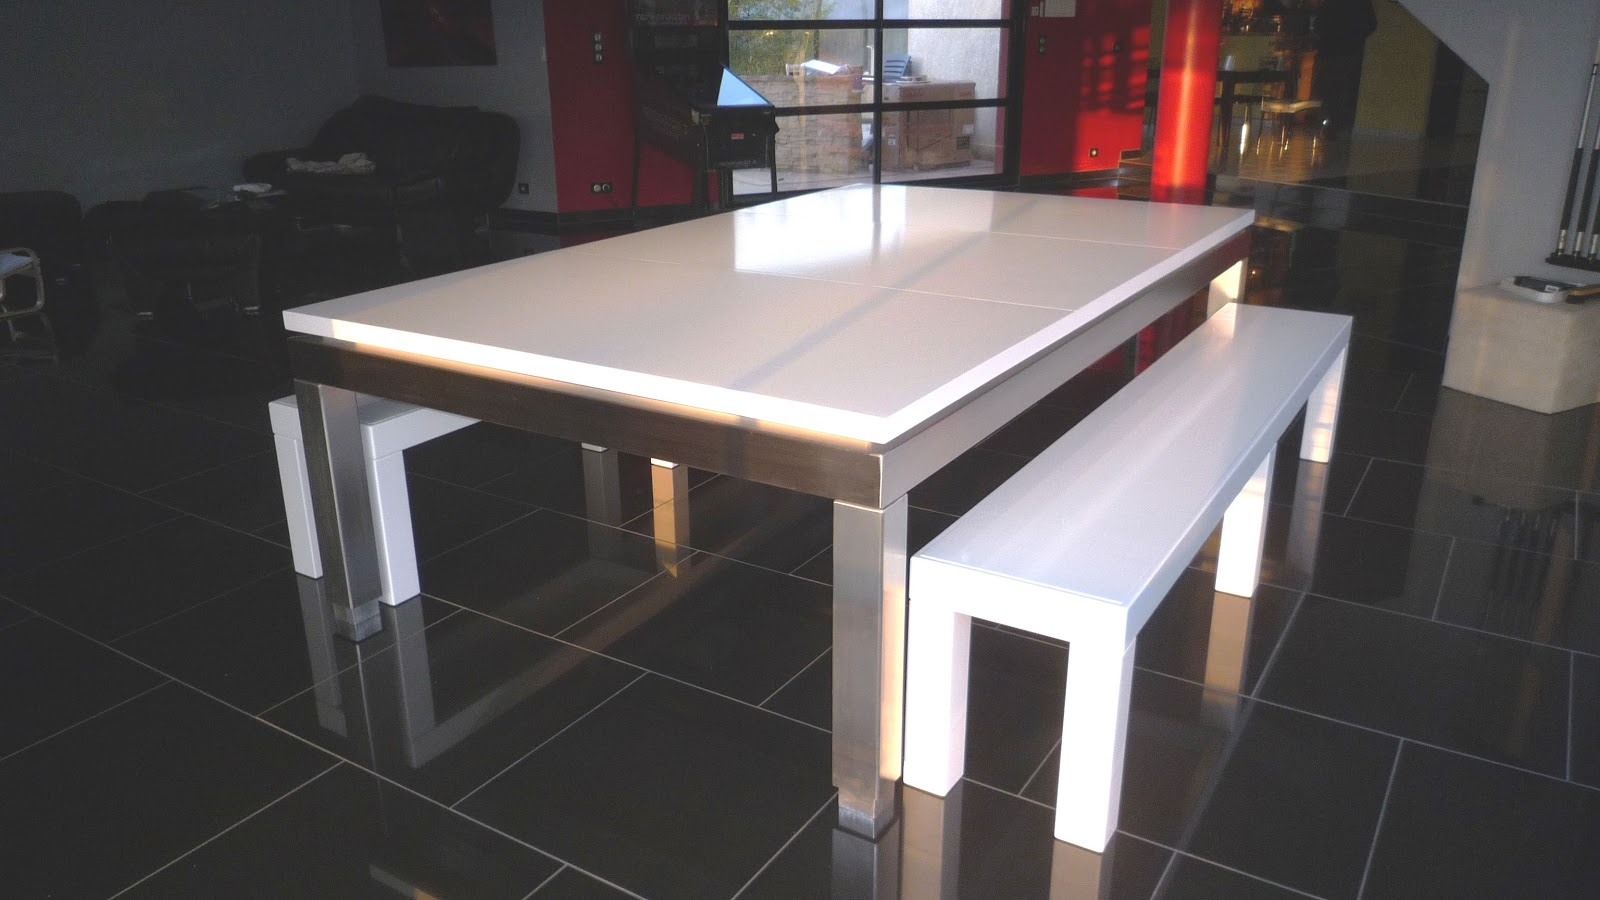 Fabricant de billards juin 2012 for Table de salle a manger billard